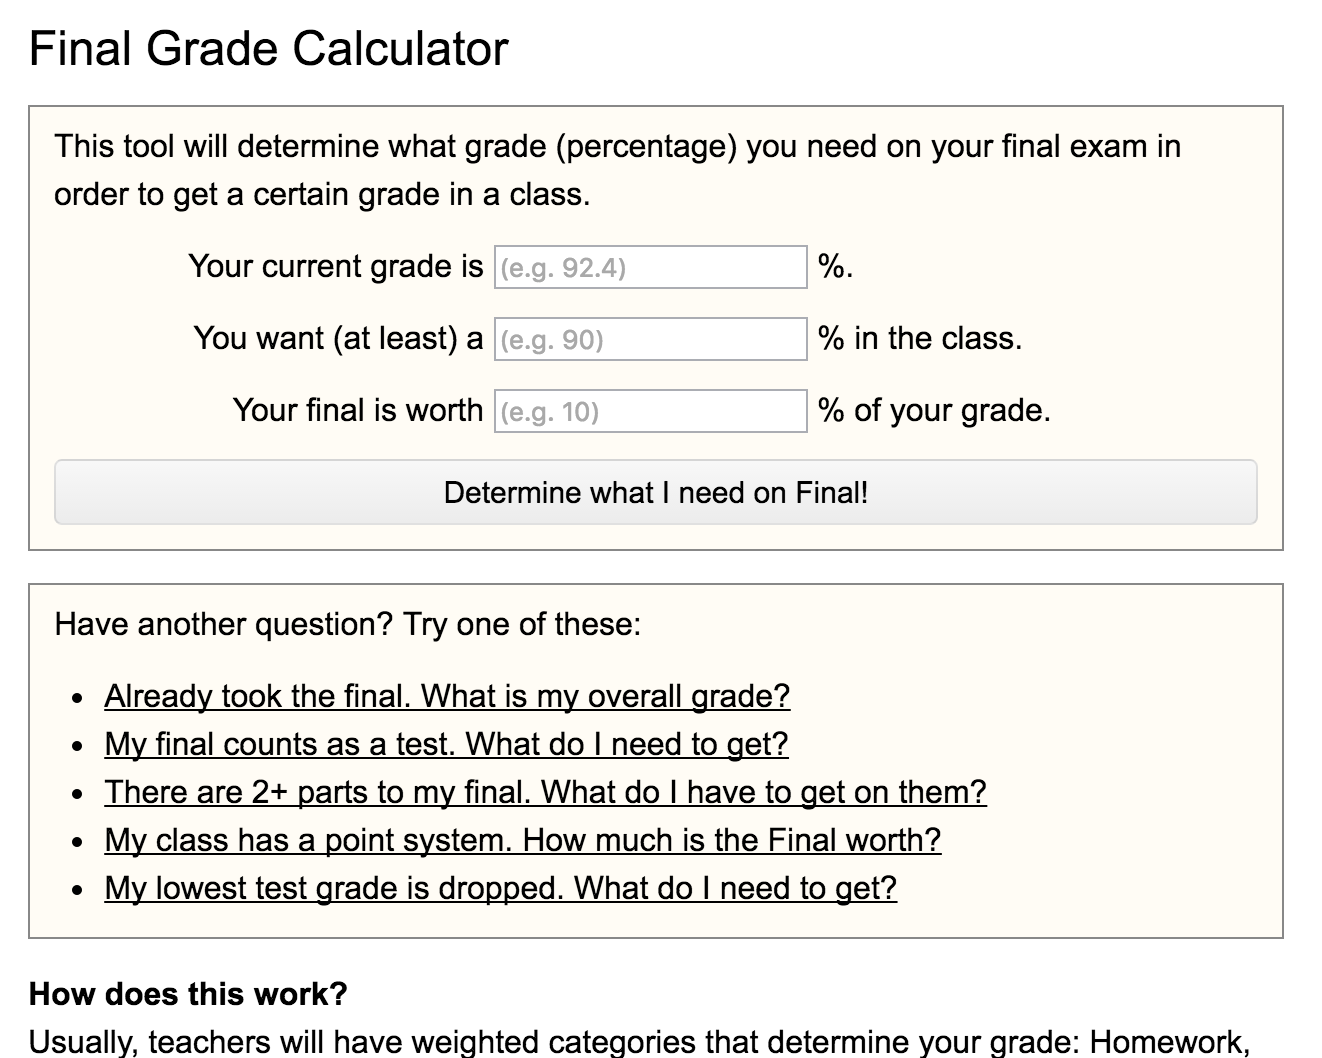 Final Grade Calculator Preview